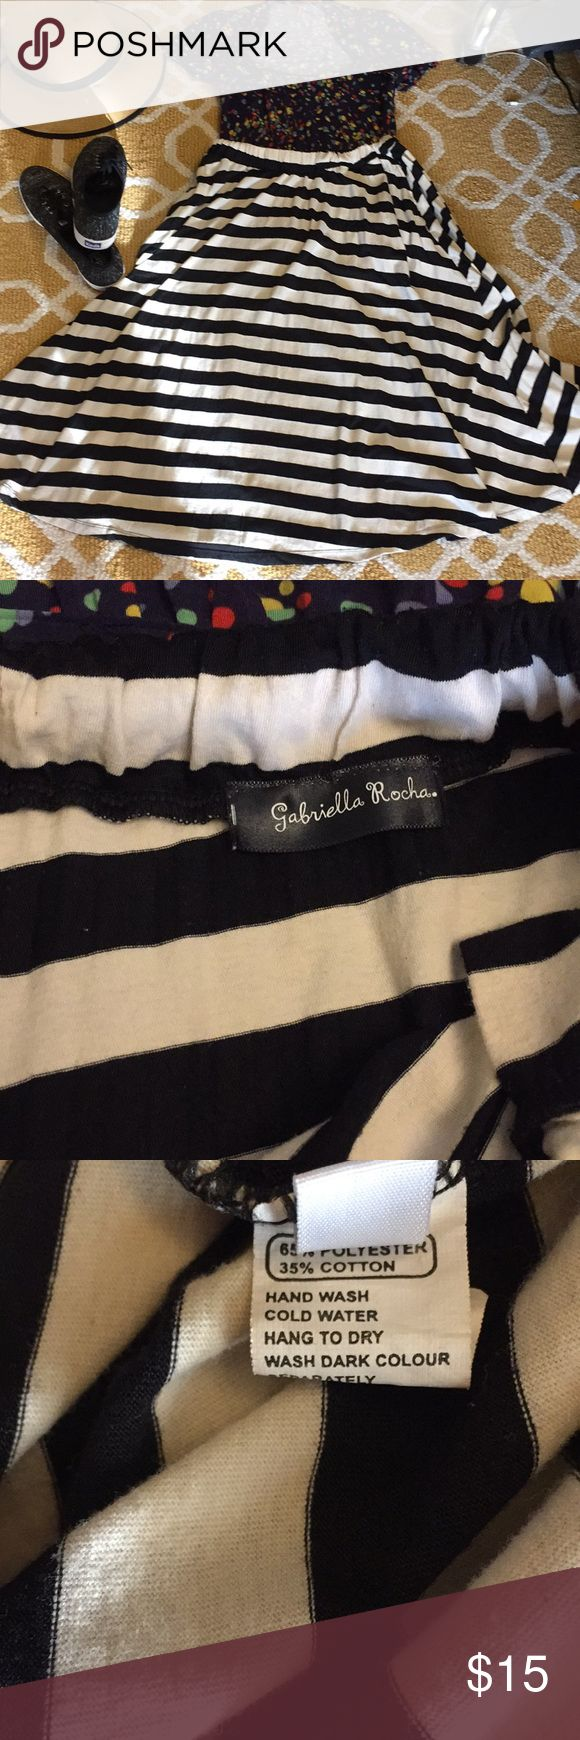 """Black cream striped midi a-line skirt POCKETS! GUC skirt from Gabriella Rocha, T-short material skirt with elastic waist and pockets. Unstretched waist measures 14"""", length total is 29"""". Very versatile, very Anthropologie-meets-Urban Outfitters. ❤️ gabriella rocha Skirts A-Line or Full"""